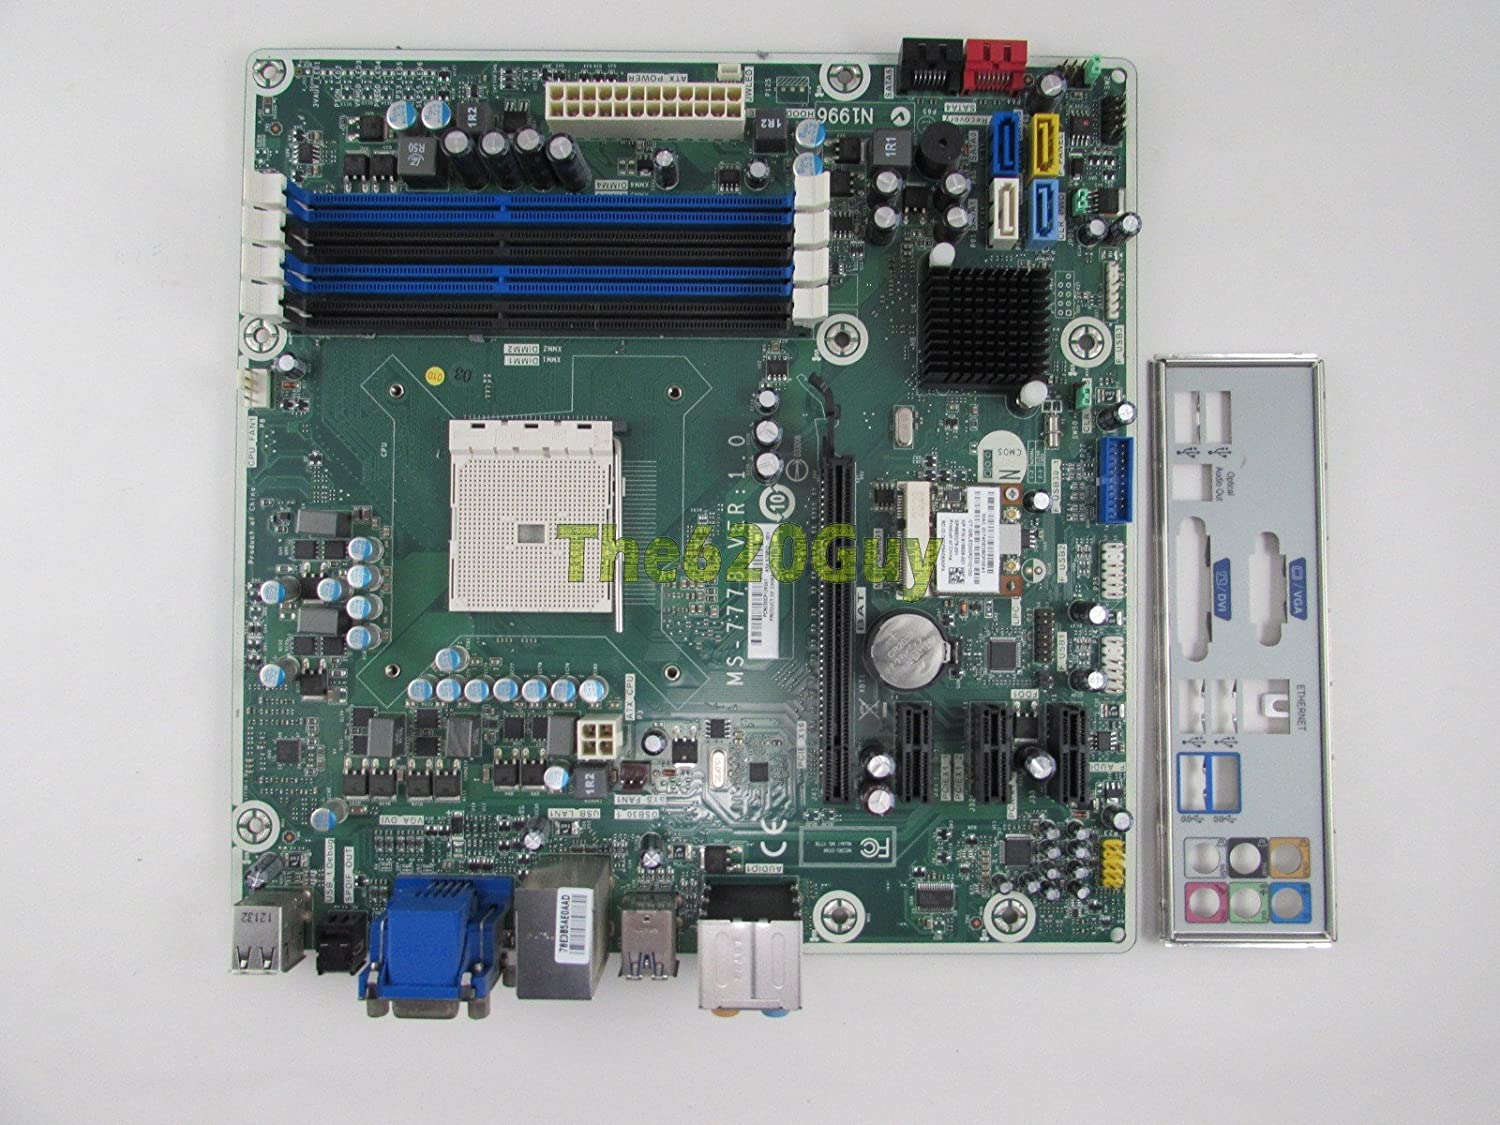 Hp Pavilion P7 1235 Jasmine 675852 001 Msi Ms 7778 Ver 10 Fm2 A75 Lotong L1 Bluetooth Headset Motherboard Electronics